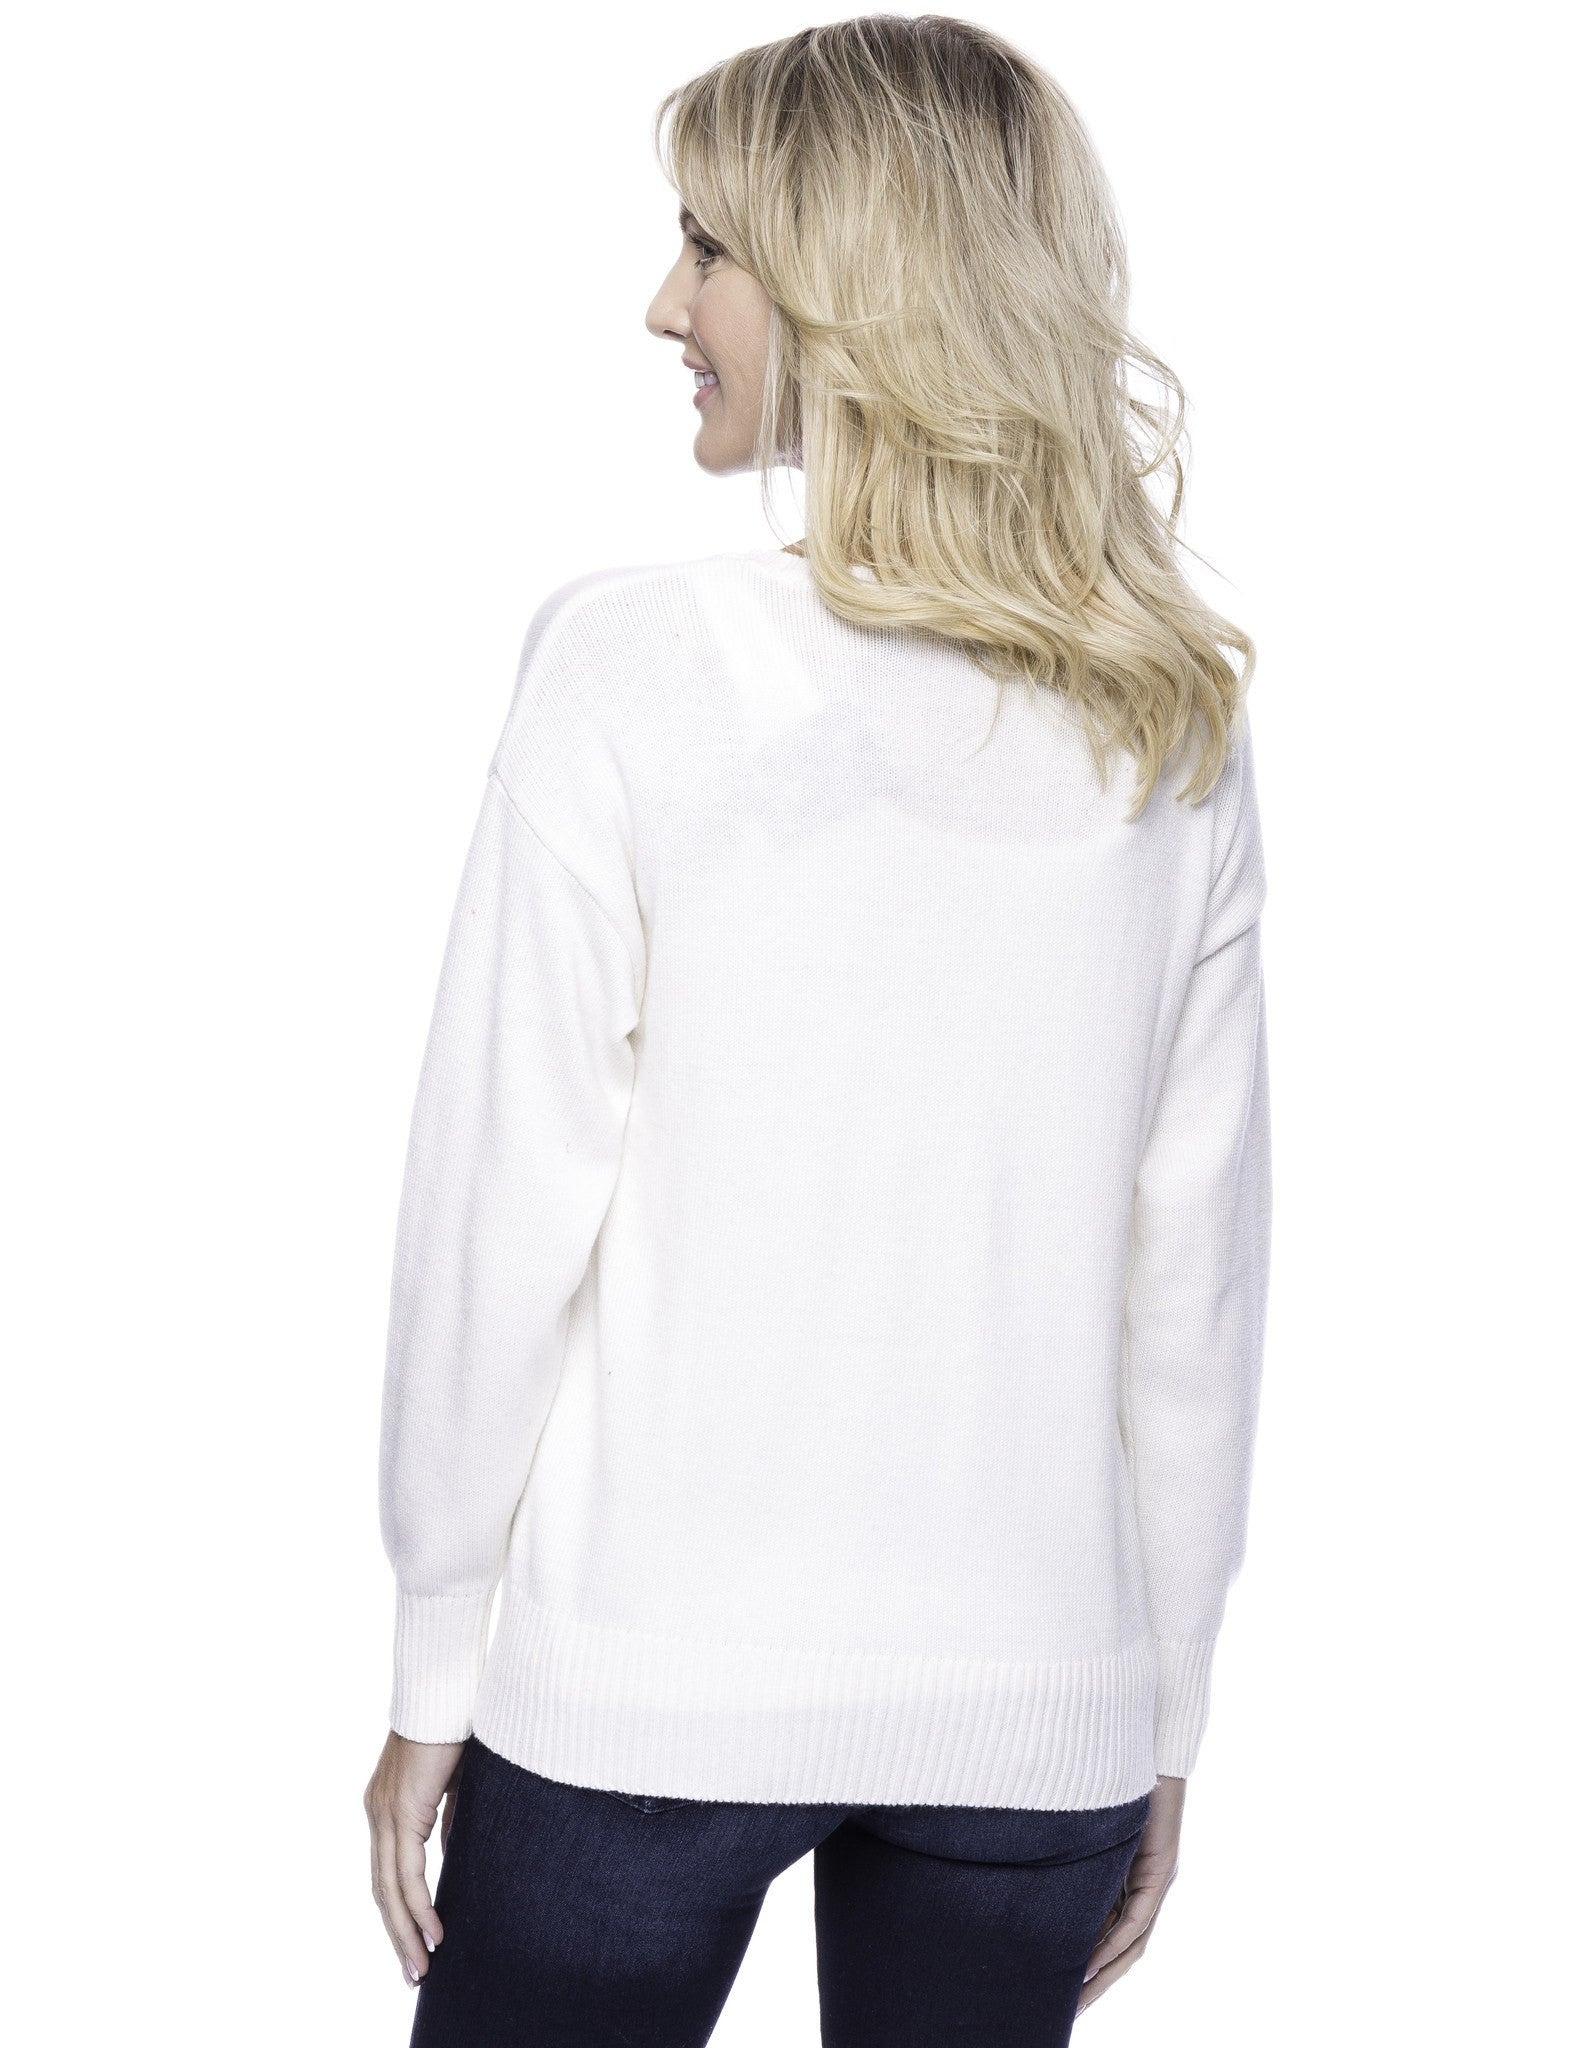 Tocco Reale Women's Cashmere Blend Crew Neck Sweater with Side Zip - Cream